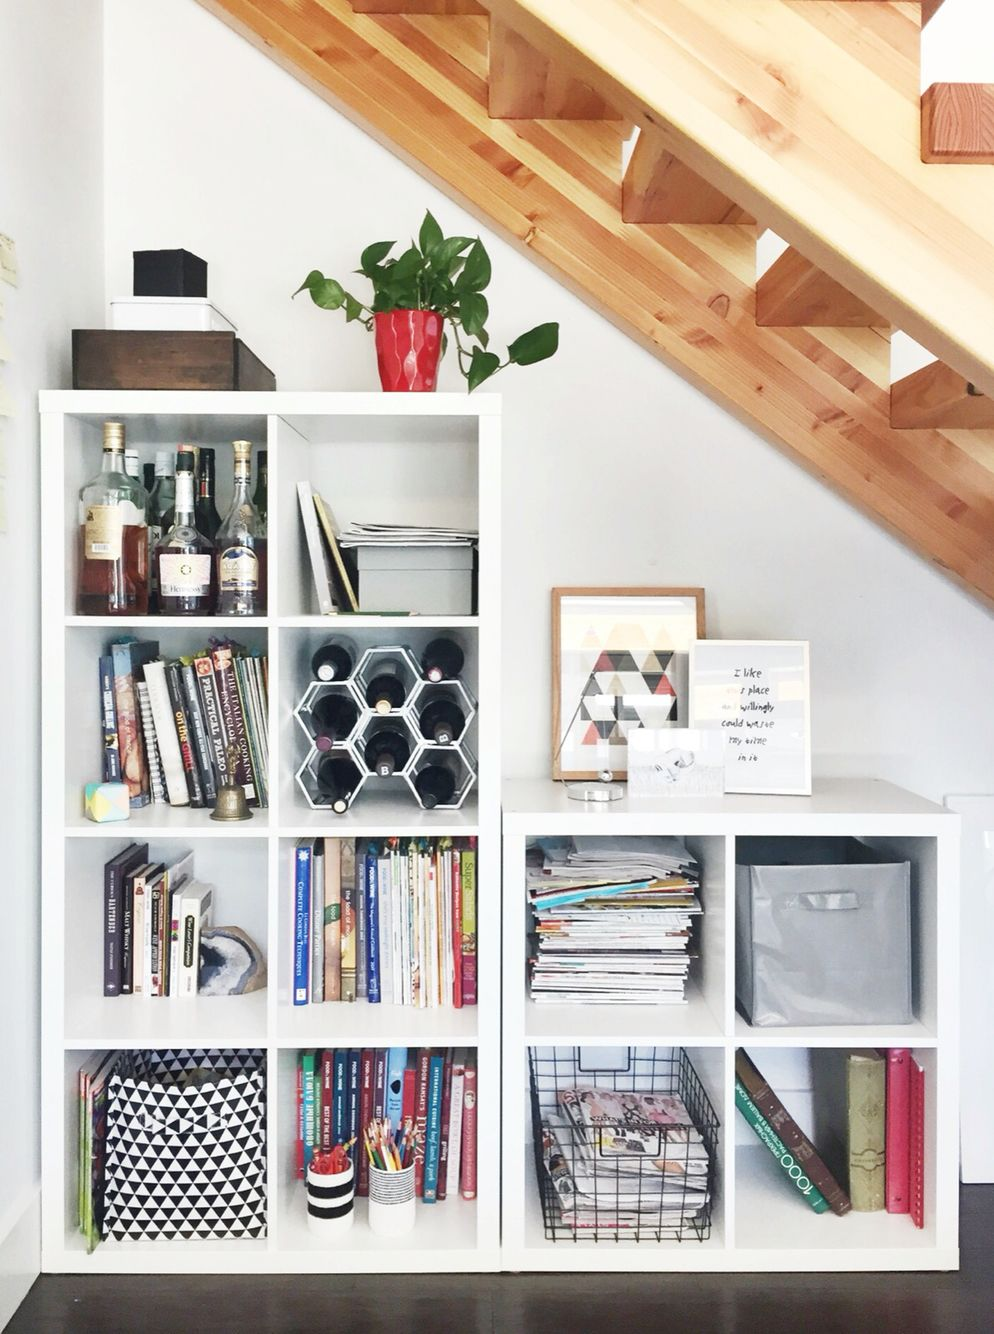 space saving storage under the stairs: ikea kallax system | ode to